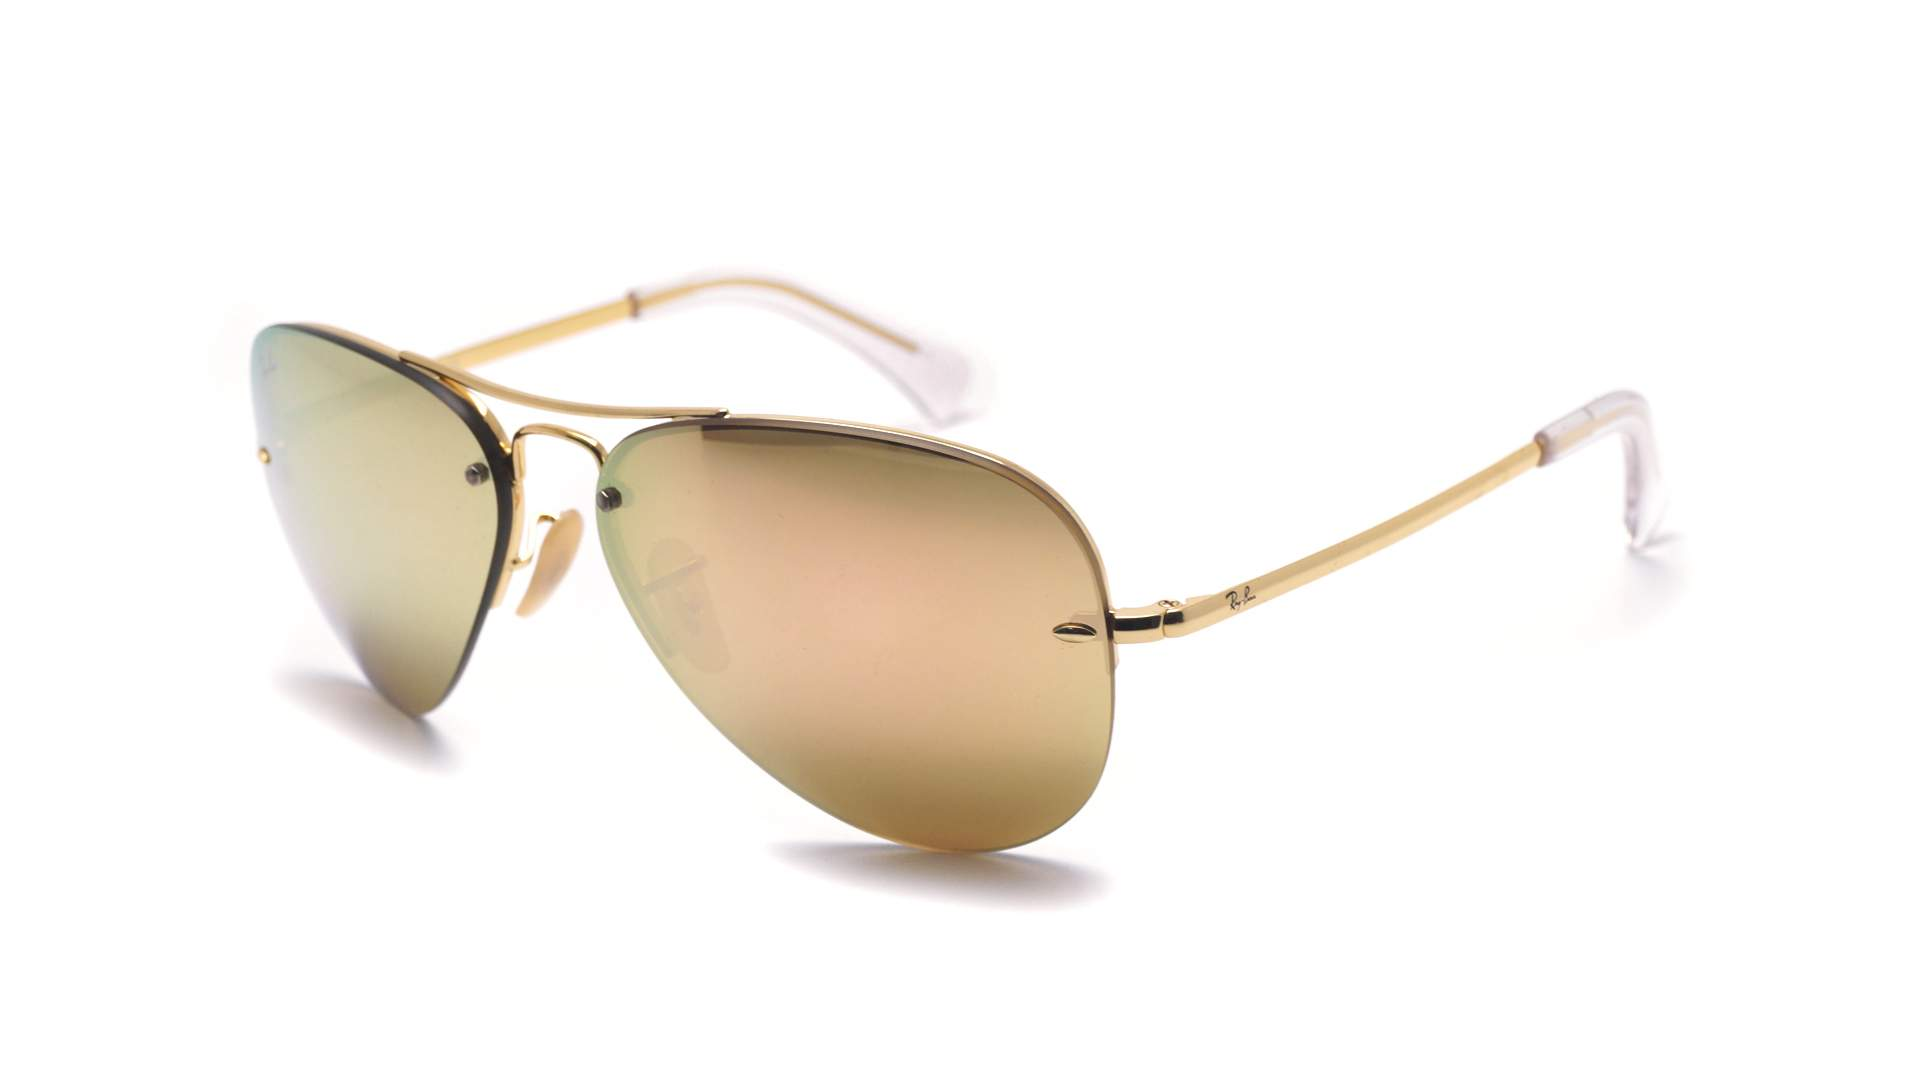 1d7bcff01bc74 Sunglasses Ray-Ban RB3449 001 2Y 59-14 Gold Large Mirror